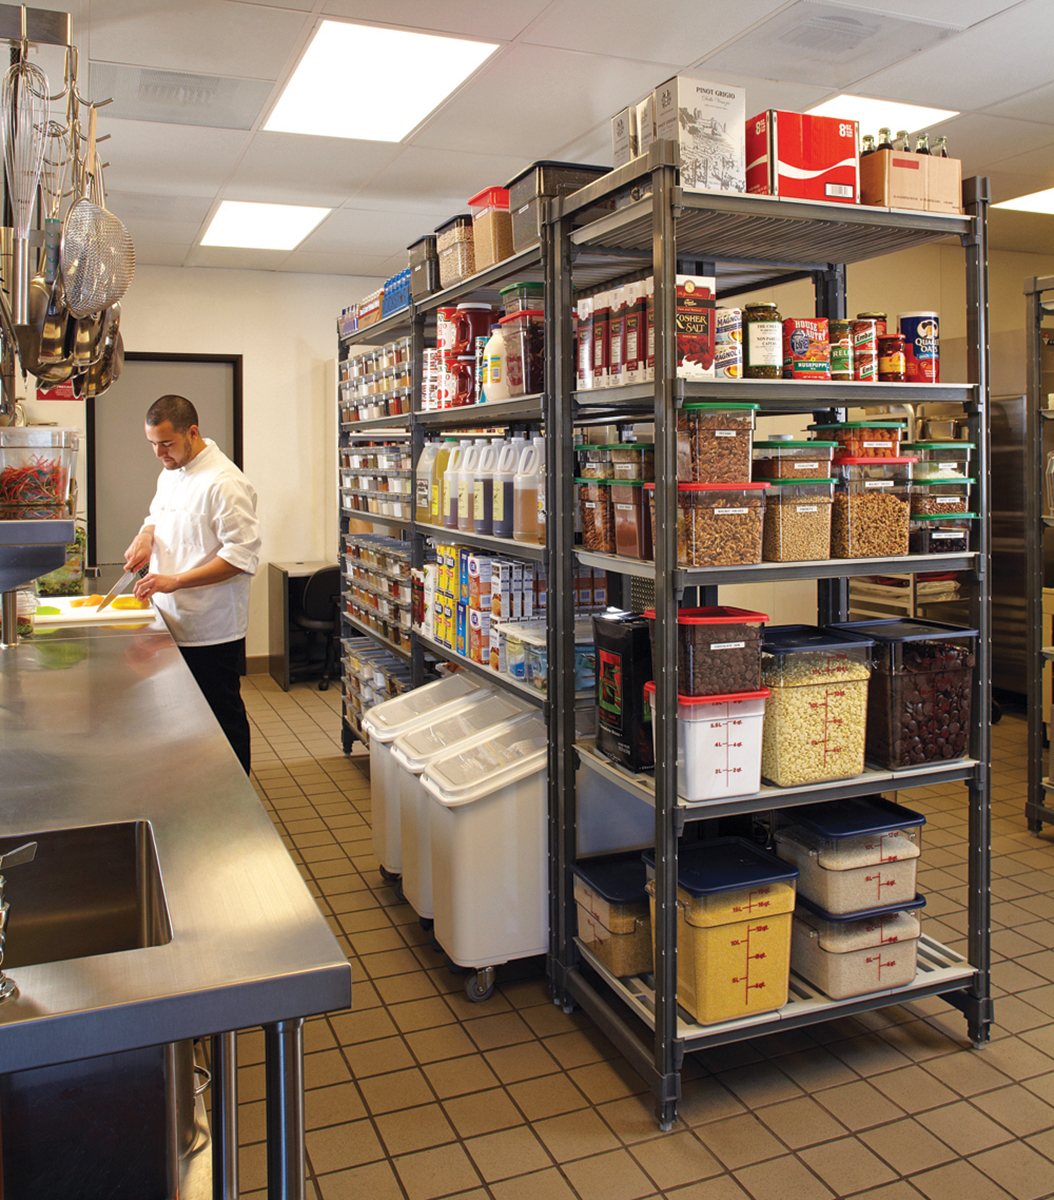 Rooms Store: Foodservice Equipment